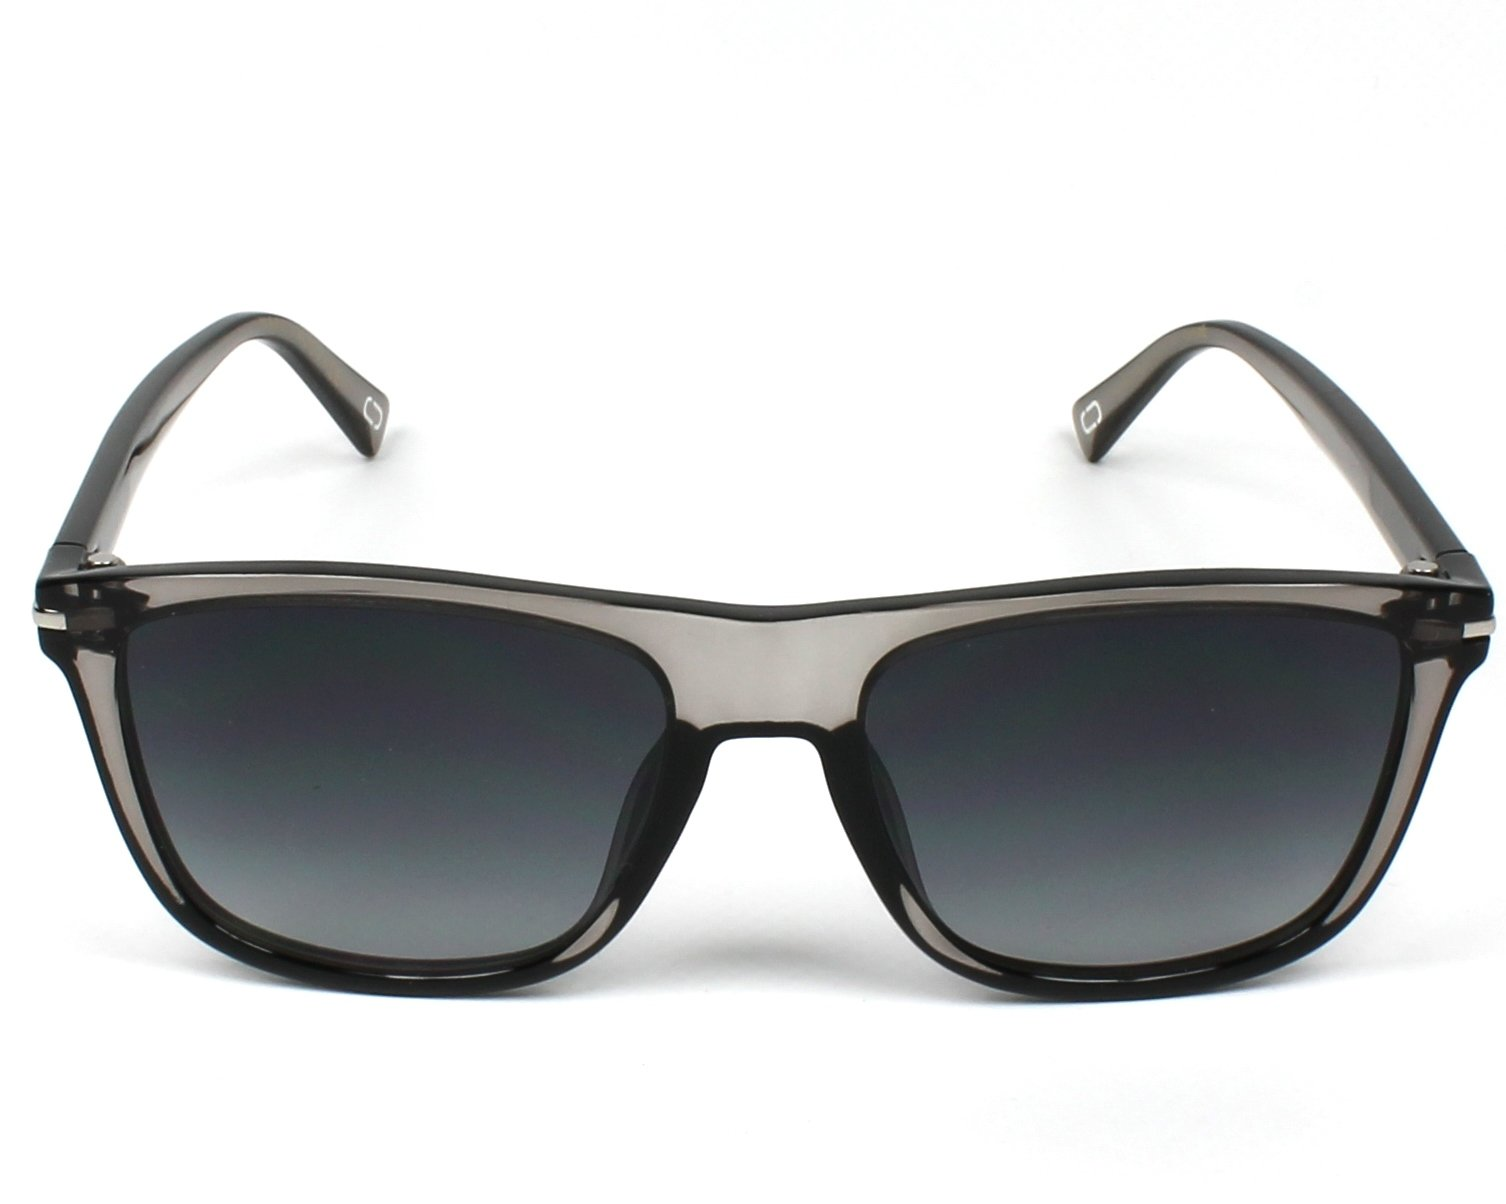 Sunglasses Marc Jacobs MARC-221-S R6S 9O 55-18 Grey front bc508008d5cf